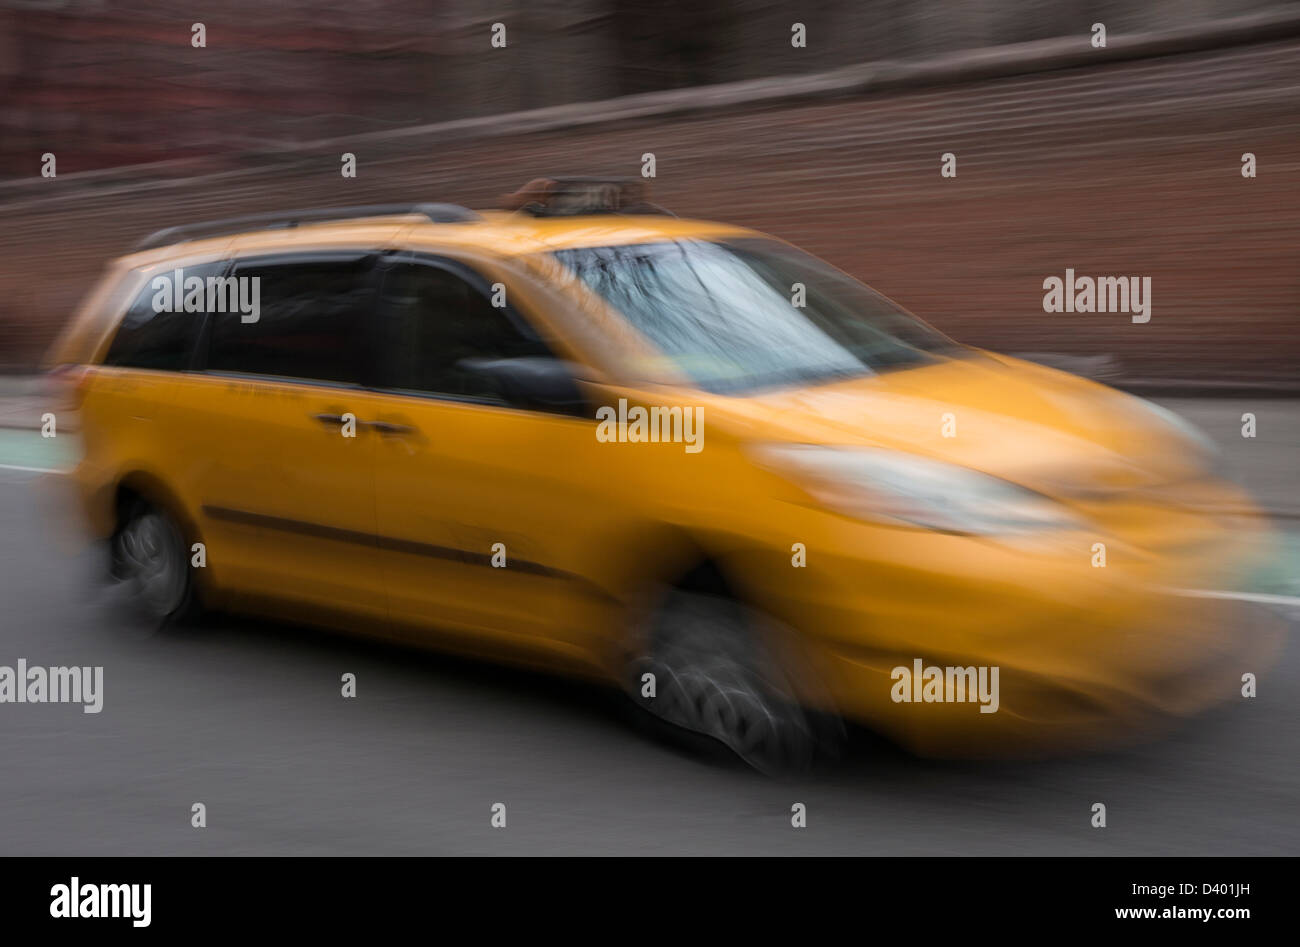 A medallion hybrid yellow taxi cab in New York City Stock Photo